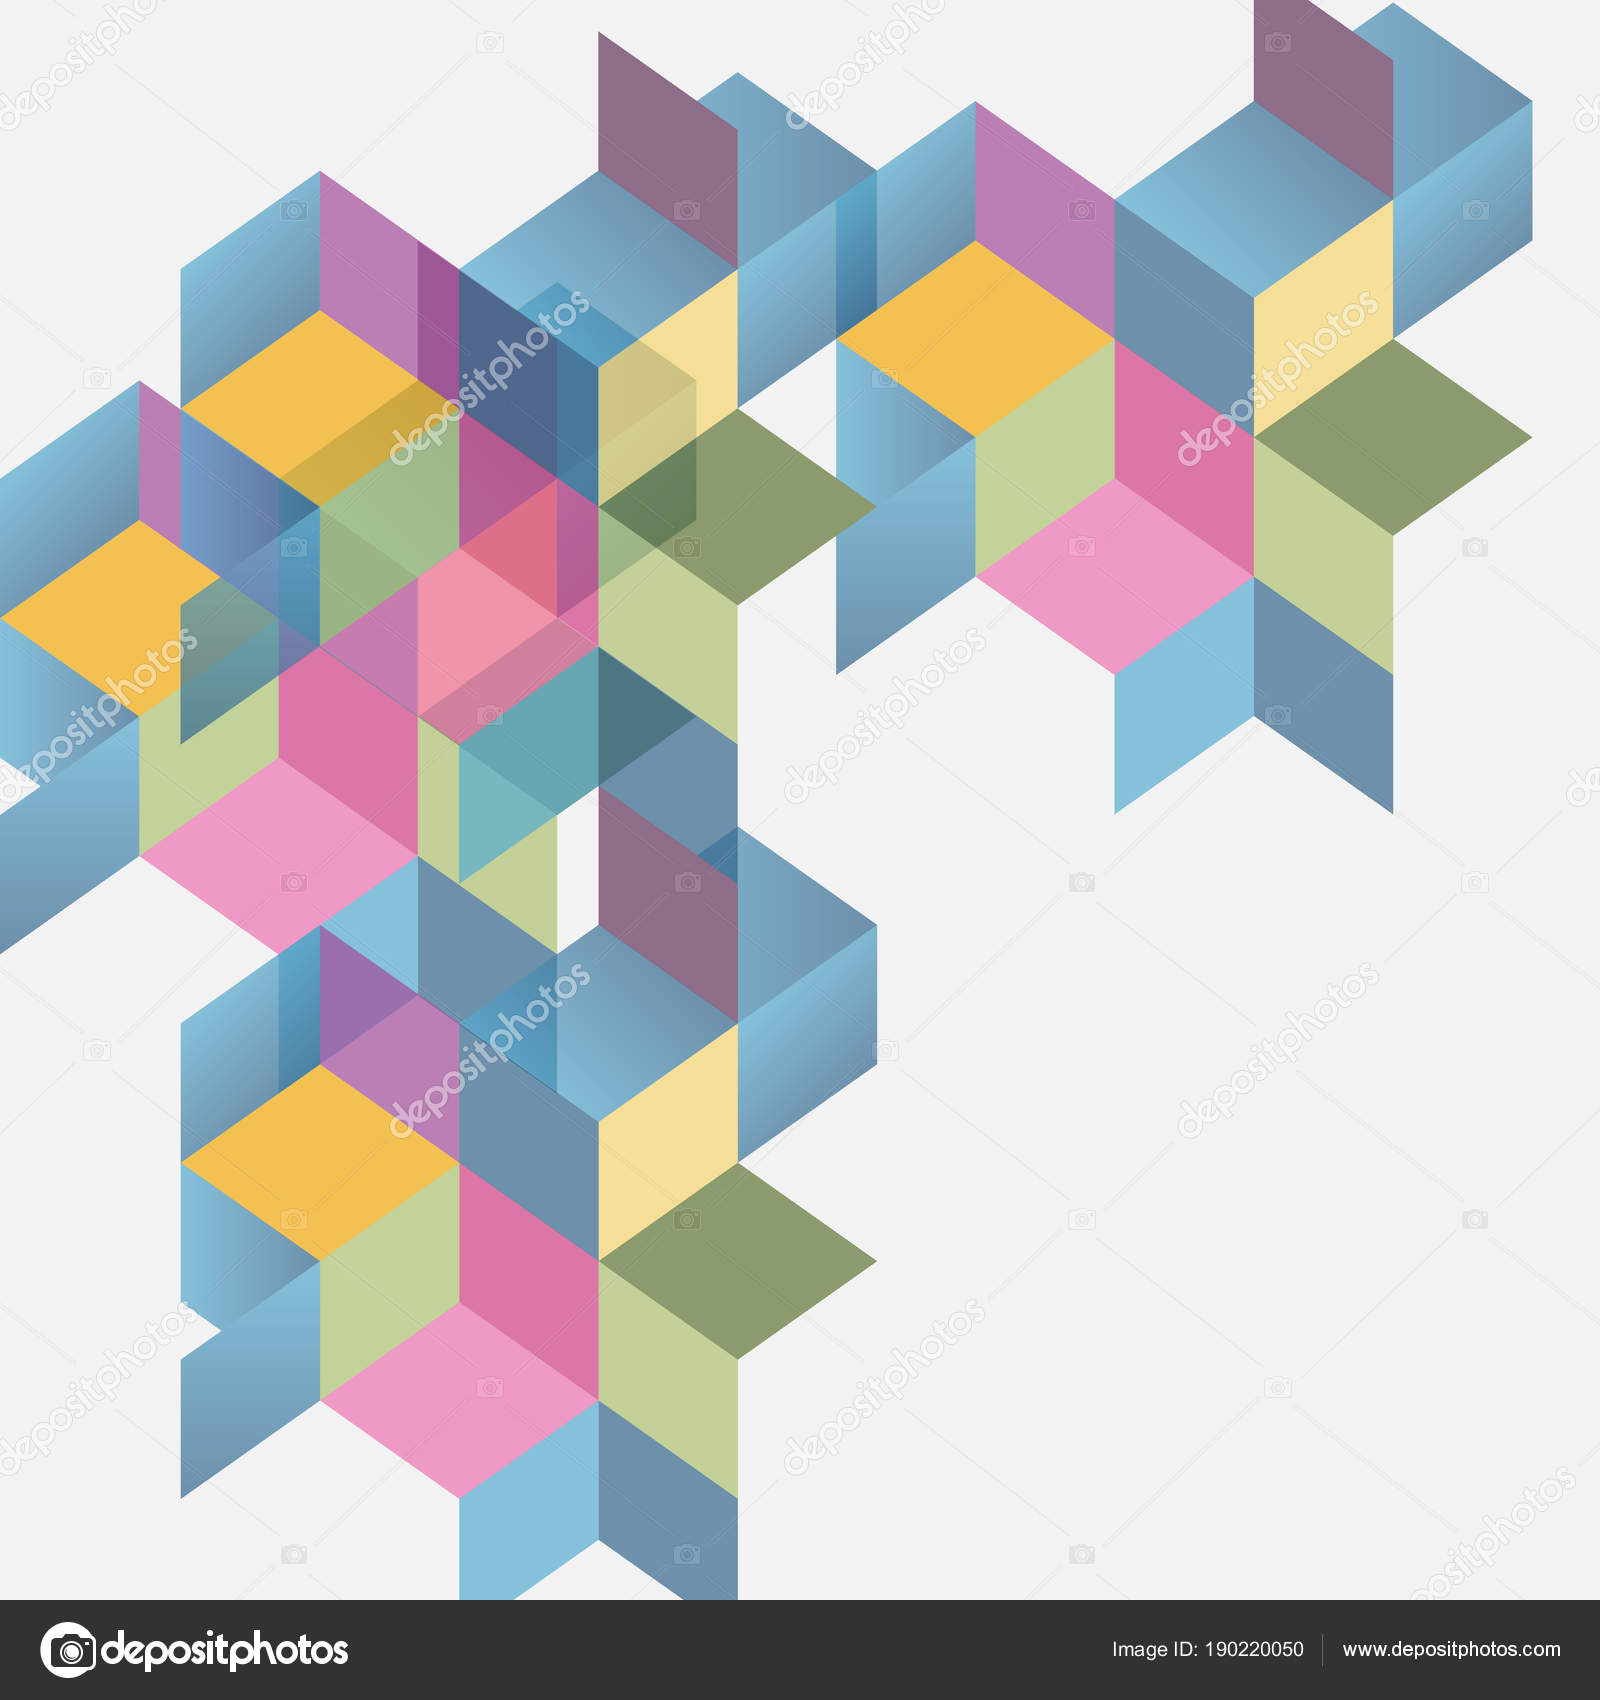 abstract isometric color shape background for your design stock